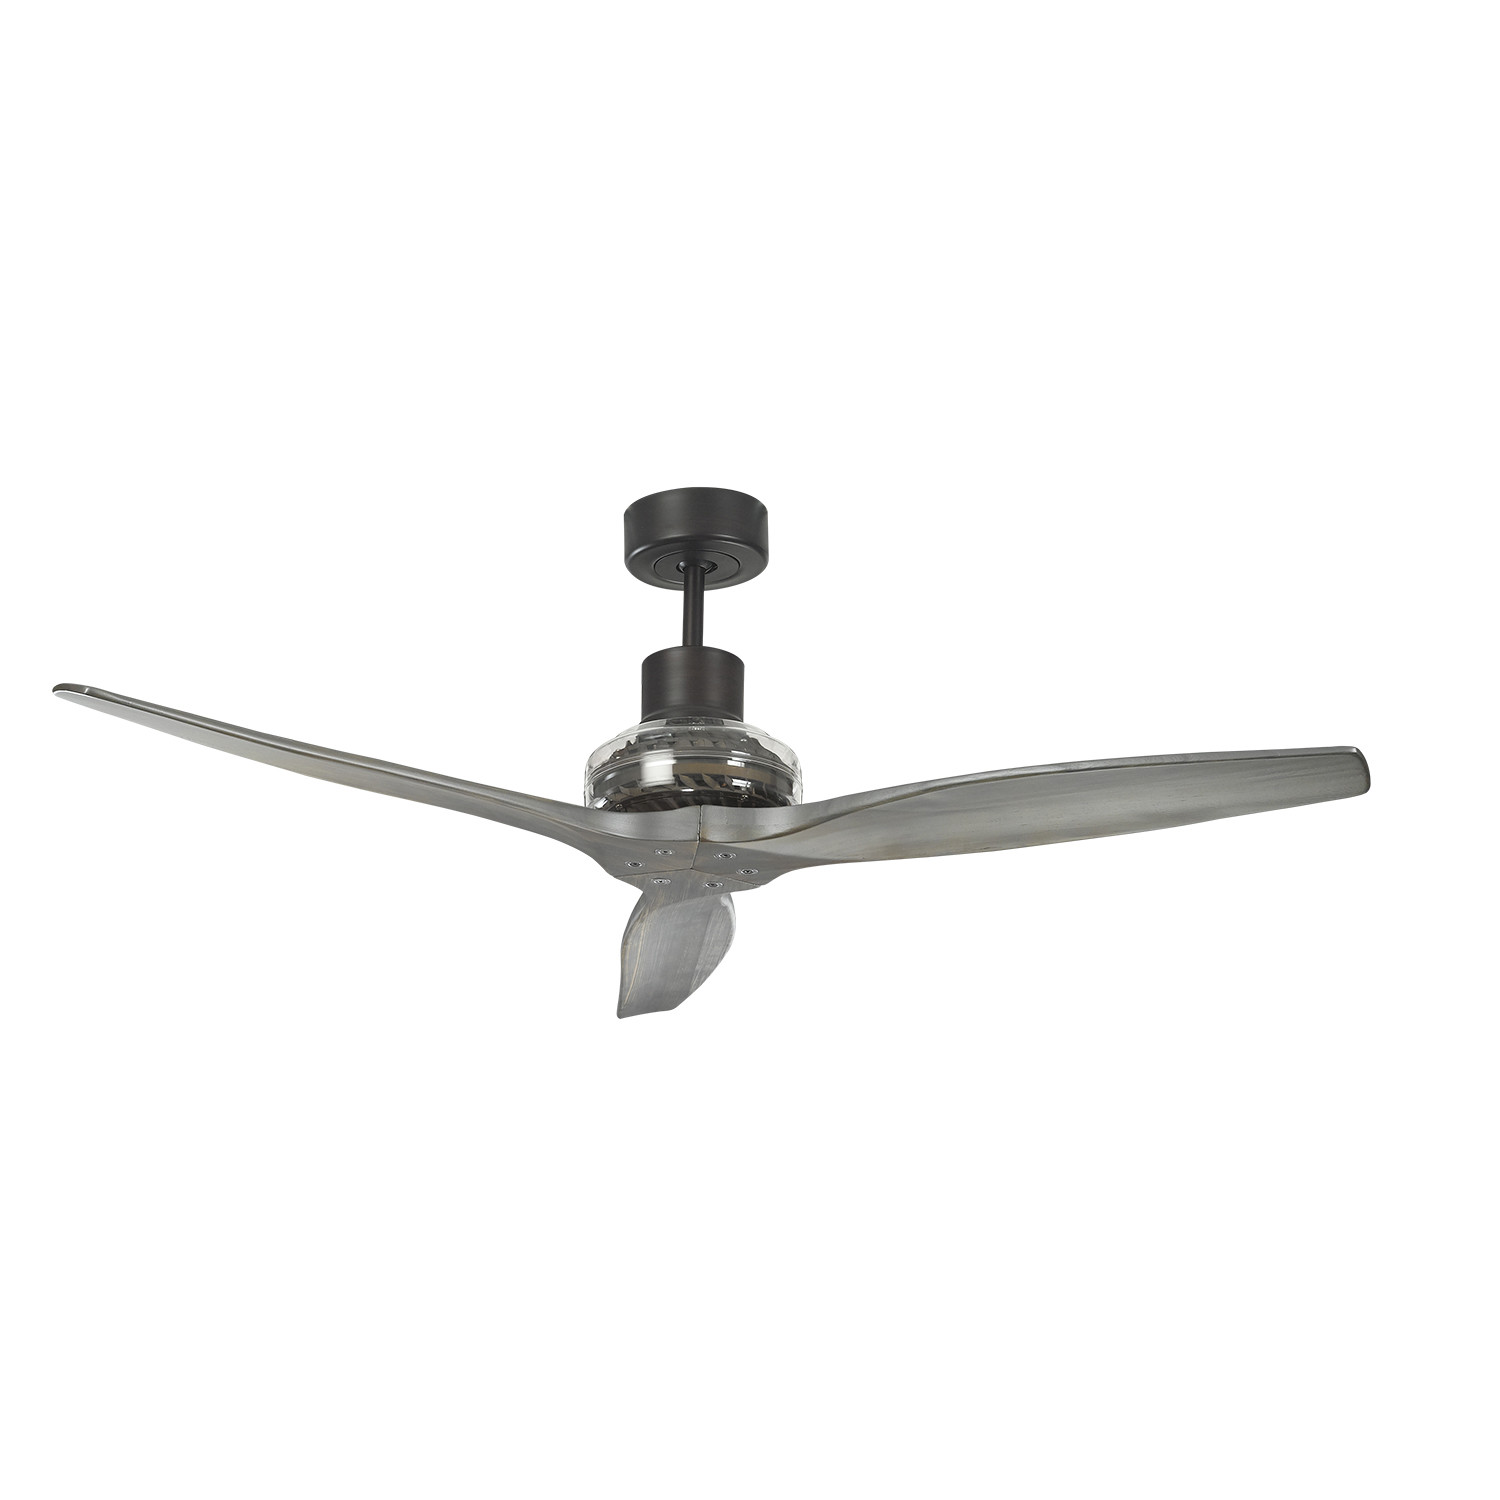 Venge Star Propeller Ceiling Fan Motor Natural 2 Blade Star Fans Touch Of Modern